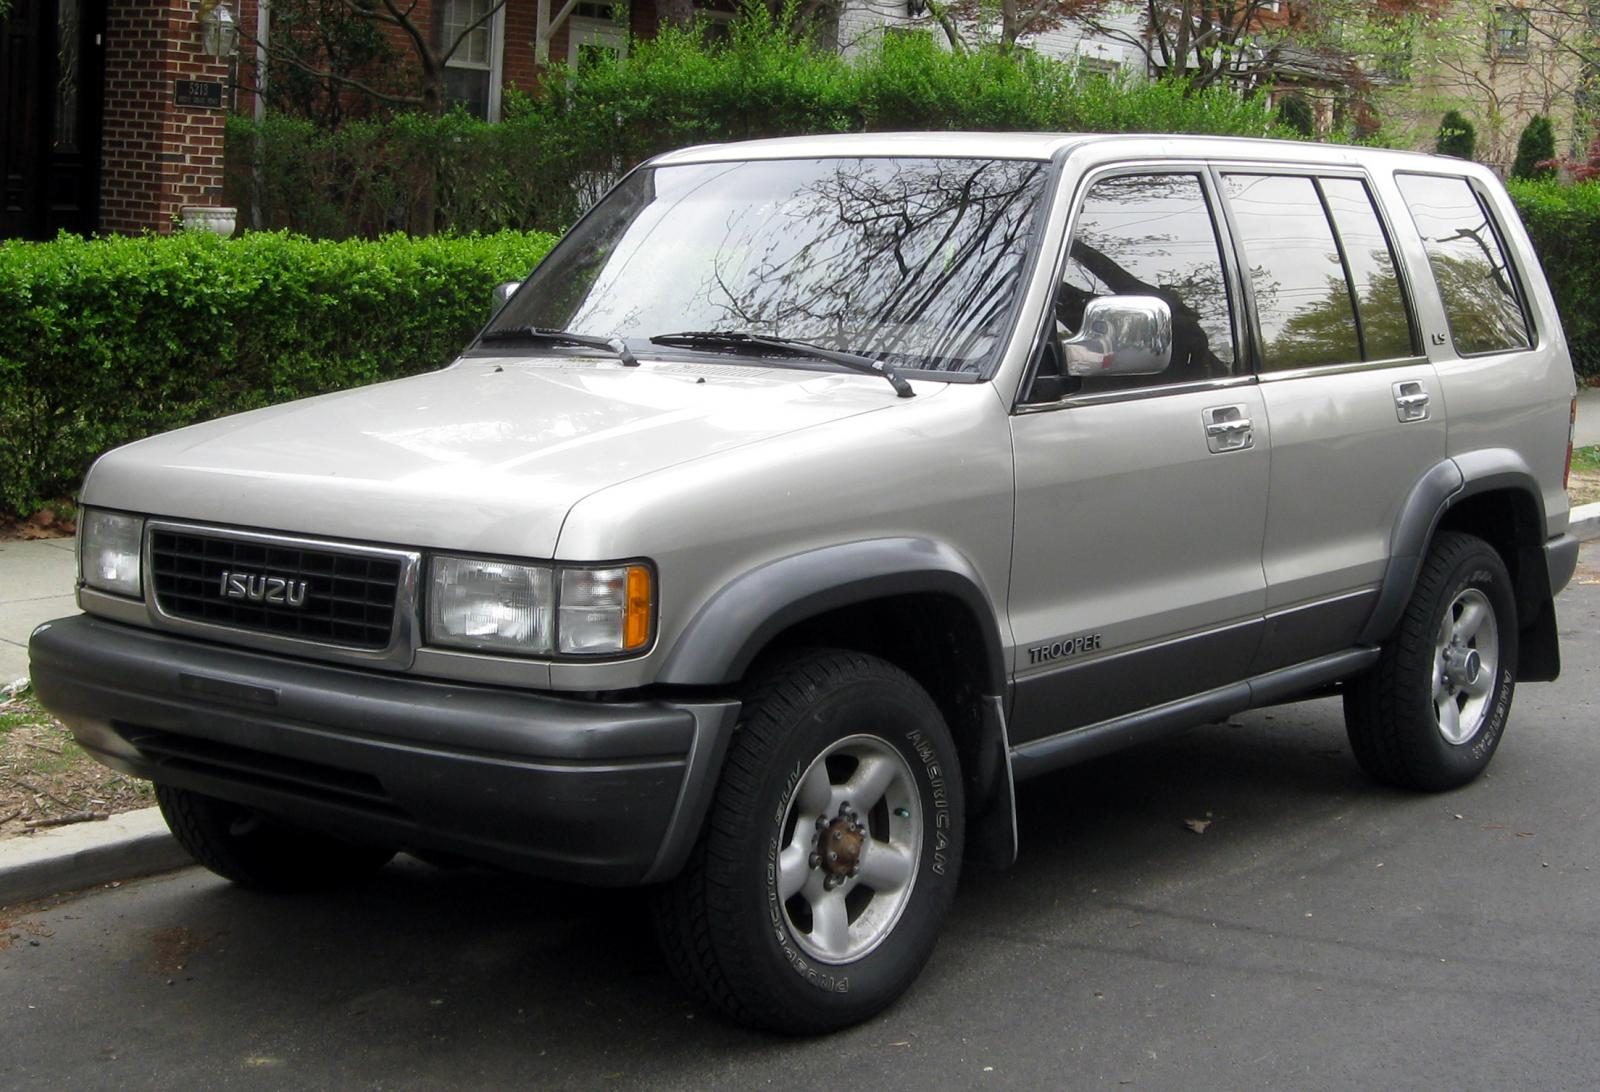 800 1024 1280 1600 origin 1997 isuzu